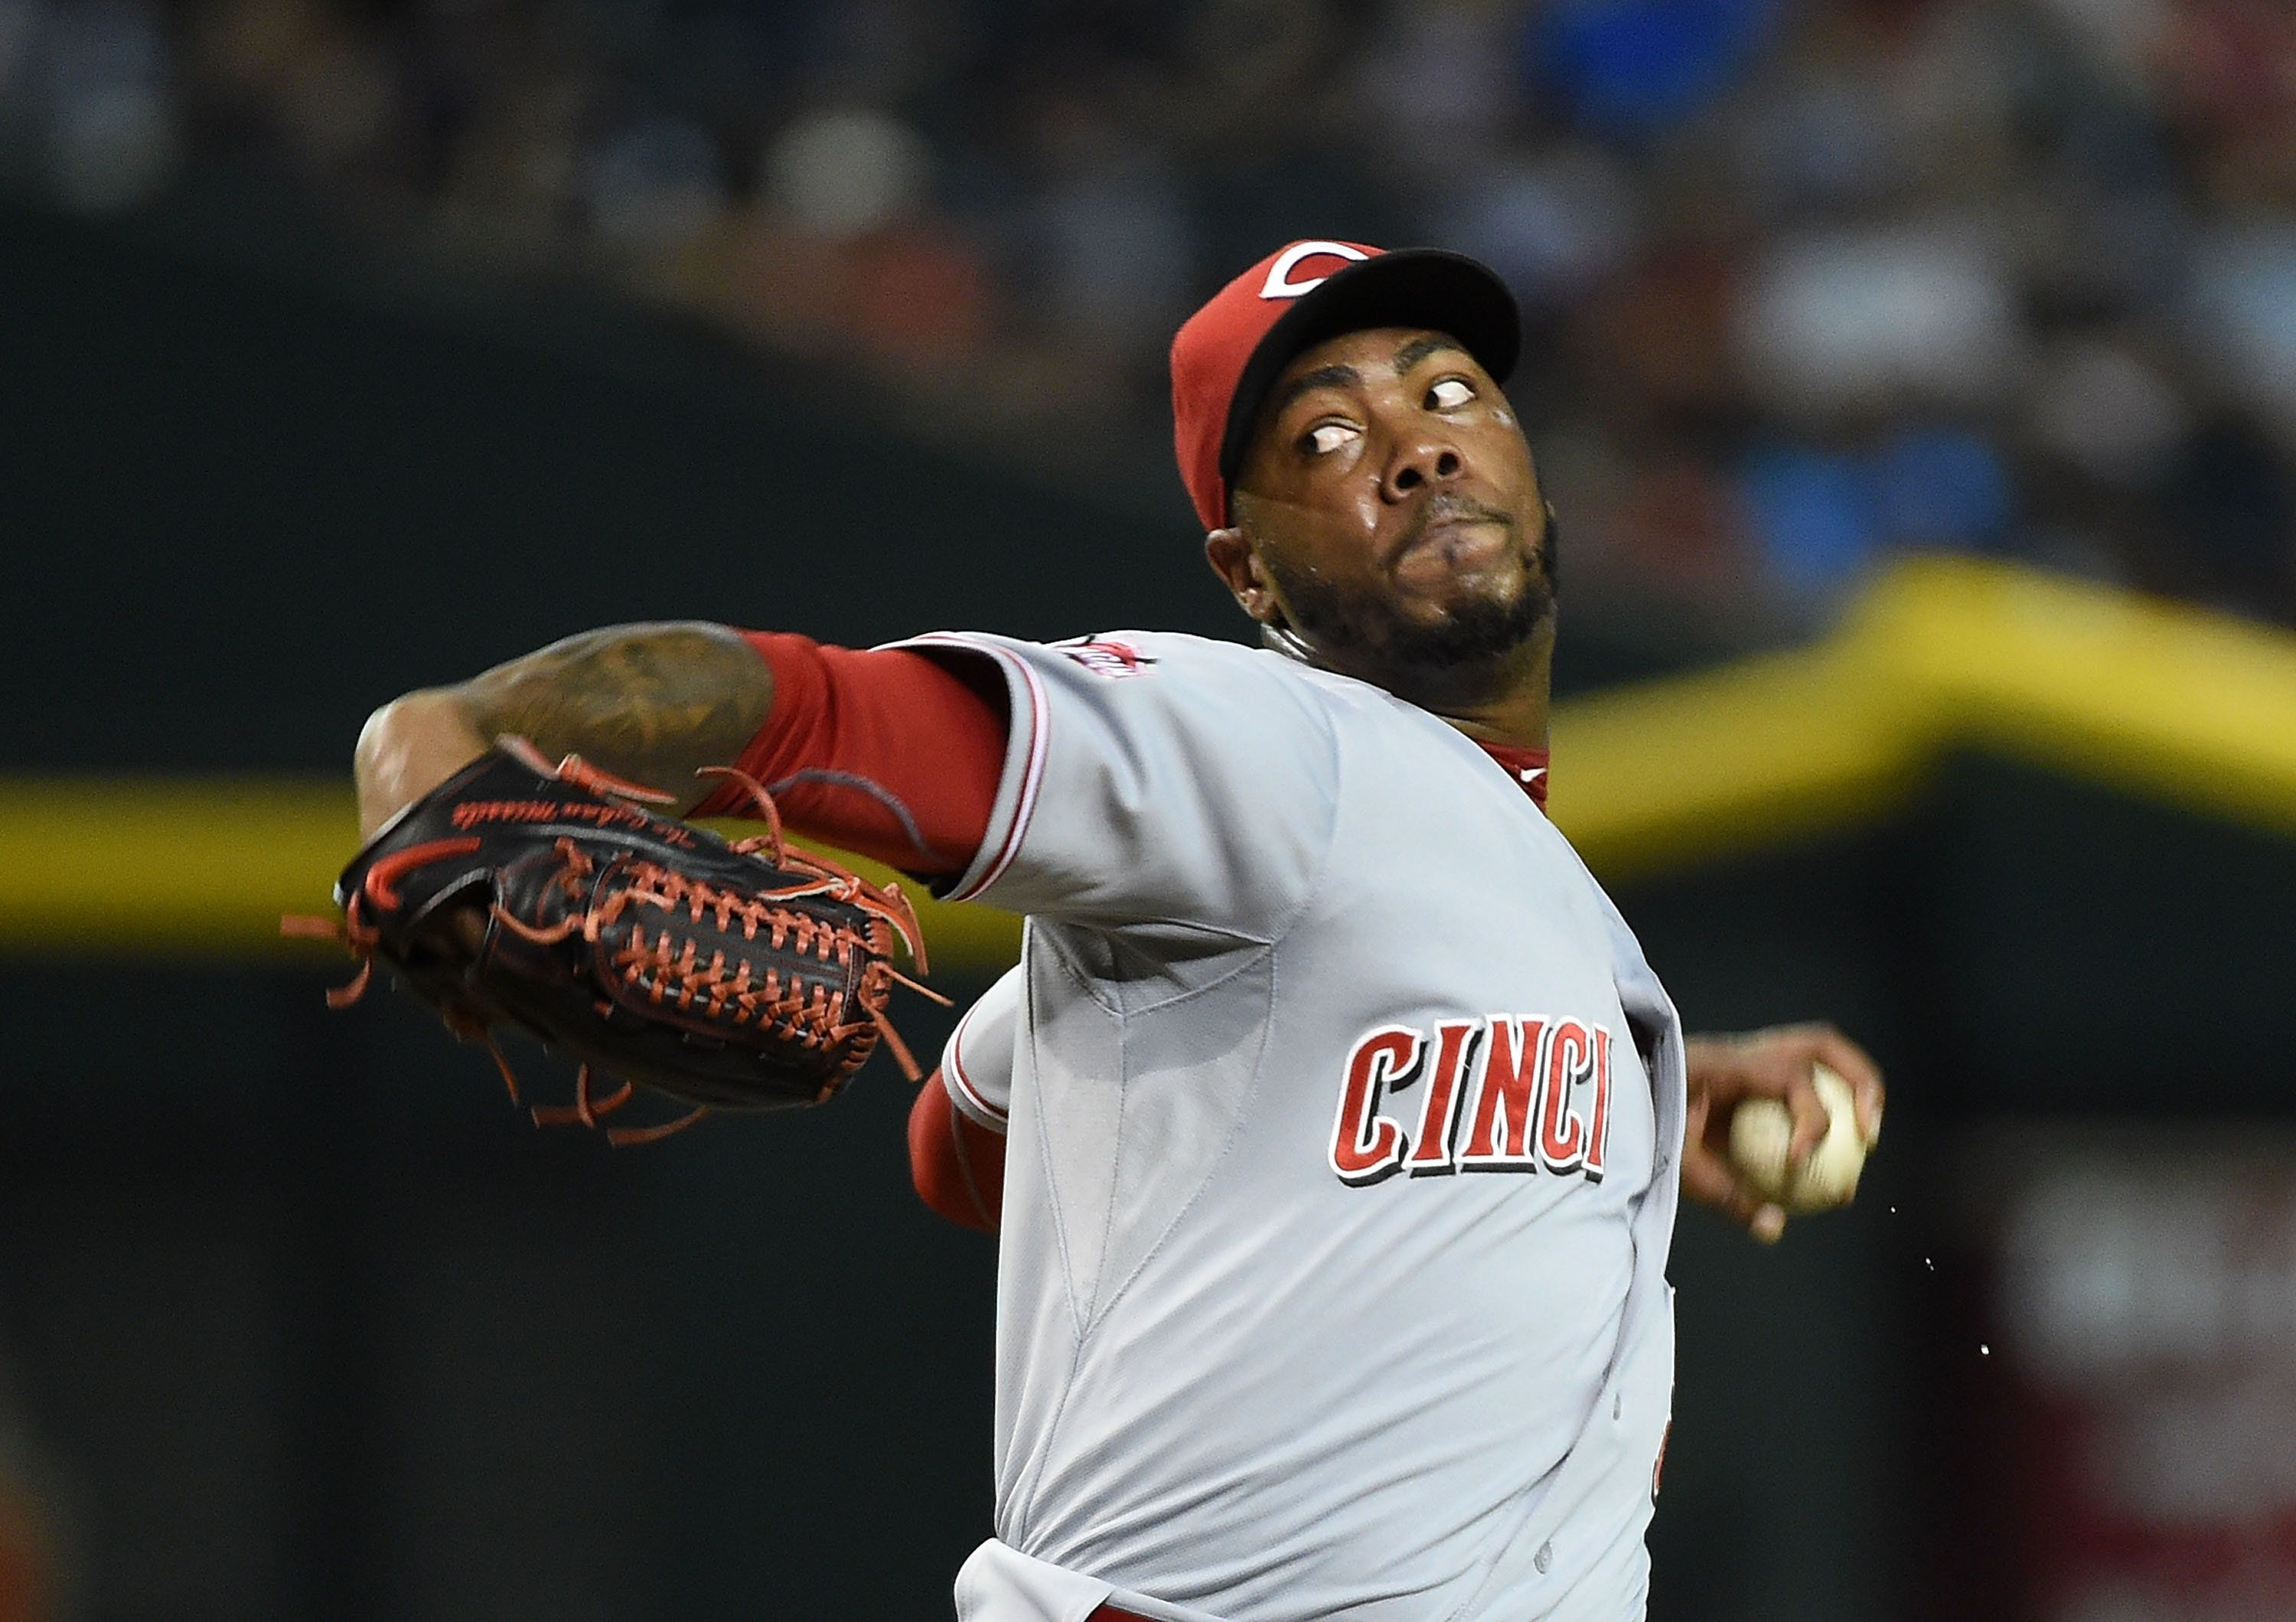 PHOENIX, AZ - AUGUST 08:  Aroldis Chapman #54 of the Cincinnati Reds delivers a pitch against the Arizona Diamondbacks at Chase Field on August 8, 2015 in Phoenix, Arizona.  (Photo by Norm Hall/Getty Images)